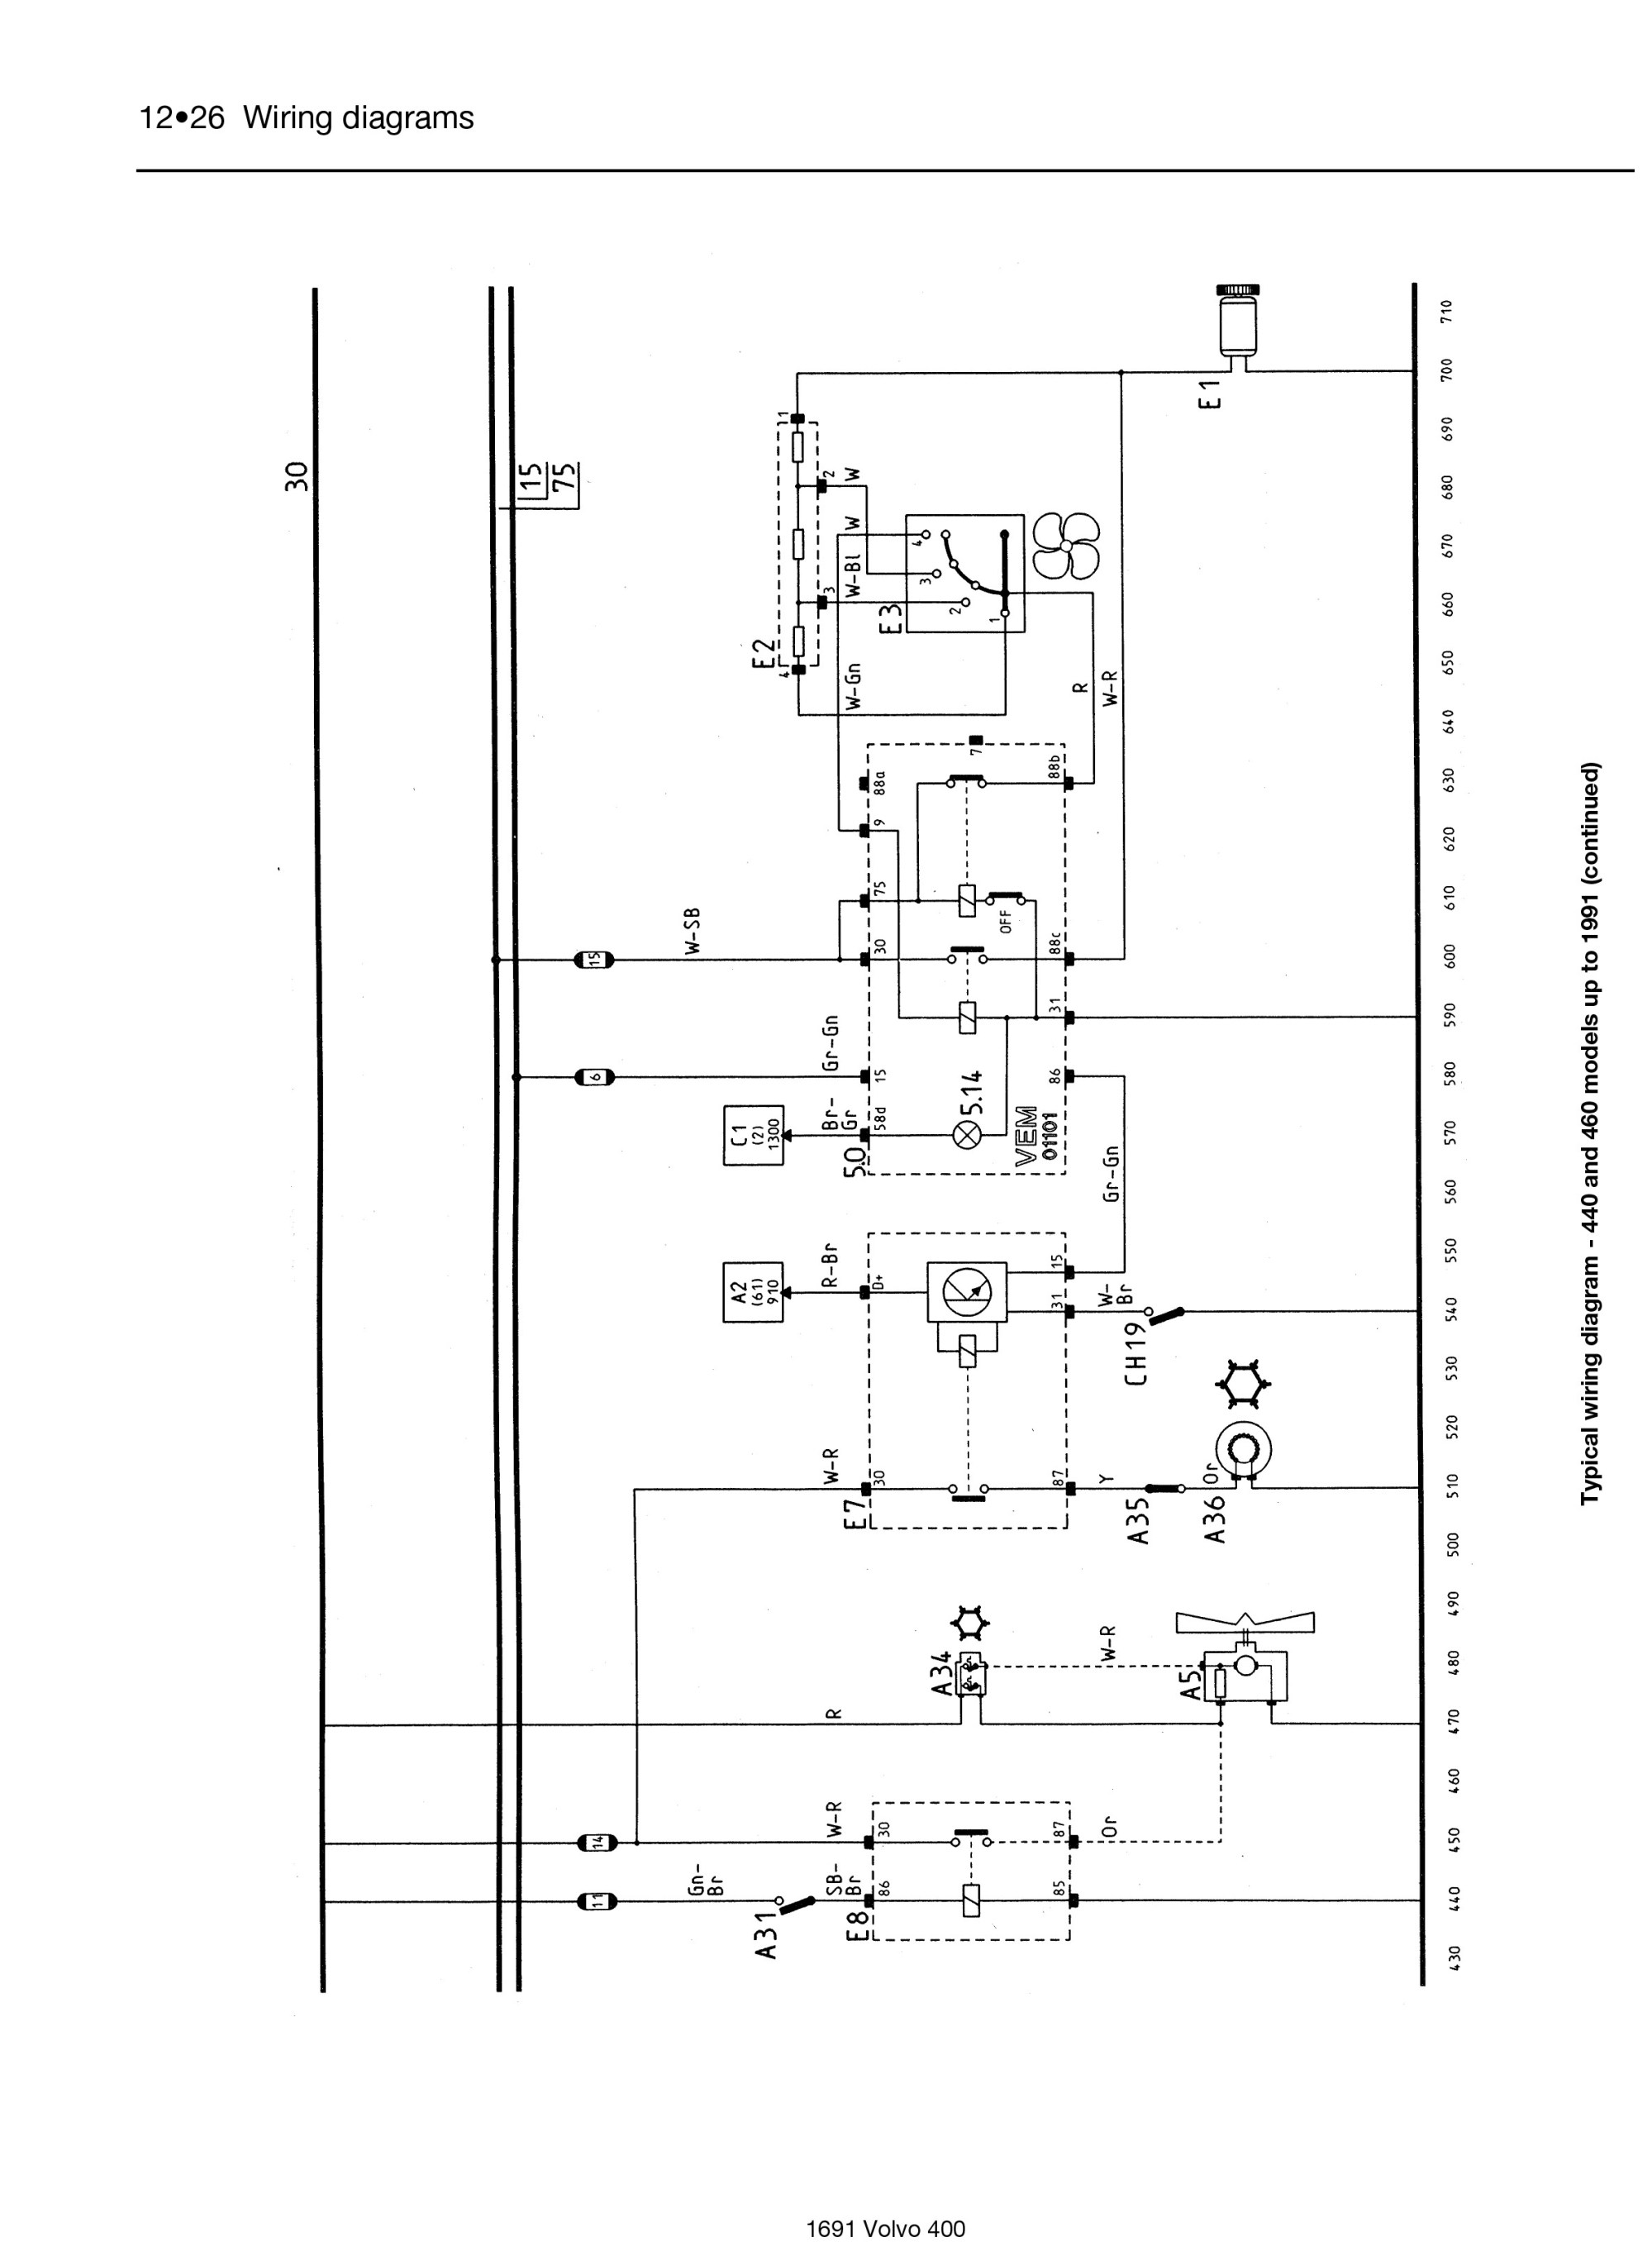 hight resolution of volvo 440 wiring diagram data schematic diagram volvo 440 wiring diagram volvo 440 wiring diagram